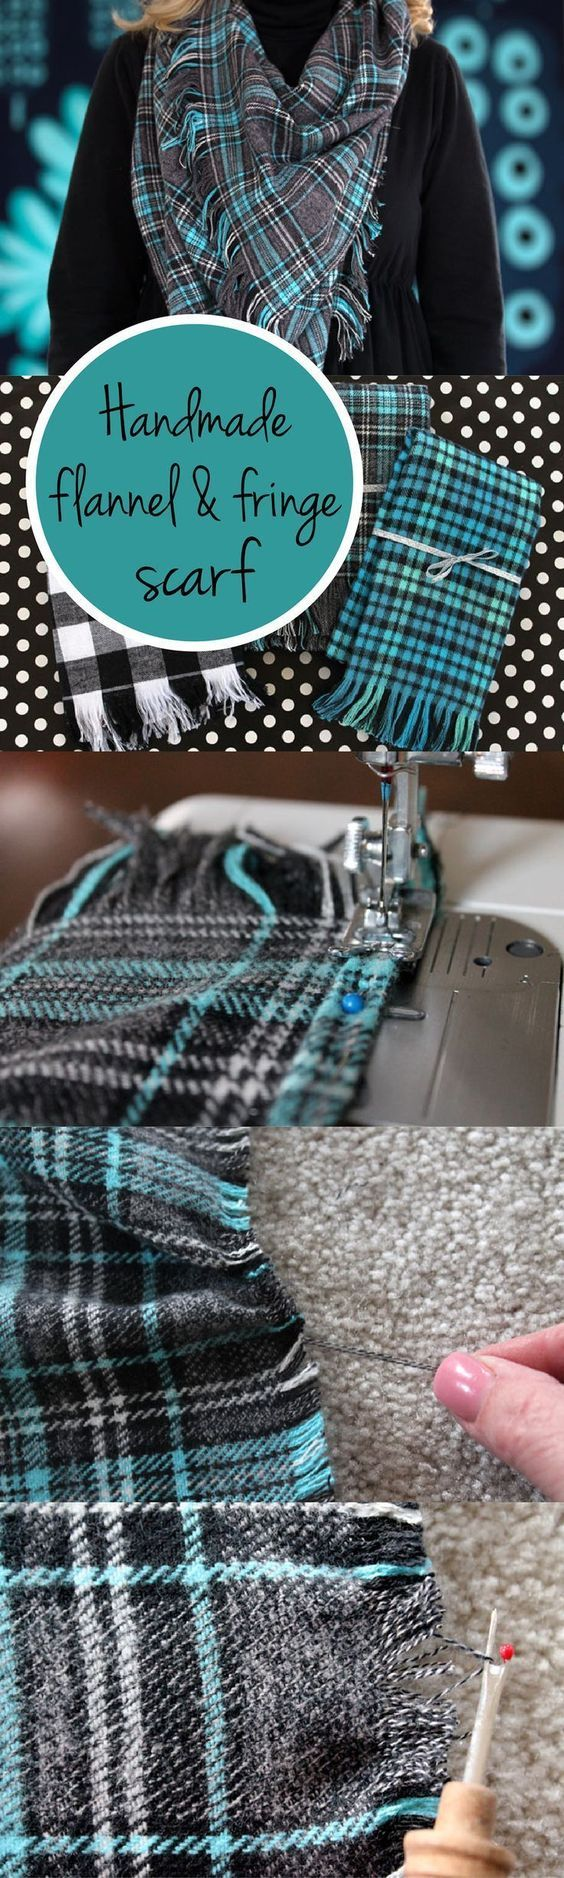 DIY a flannel and fringe scarf